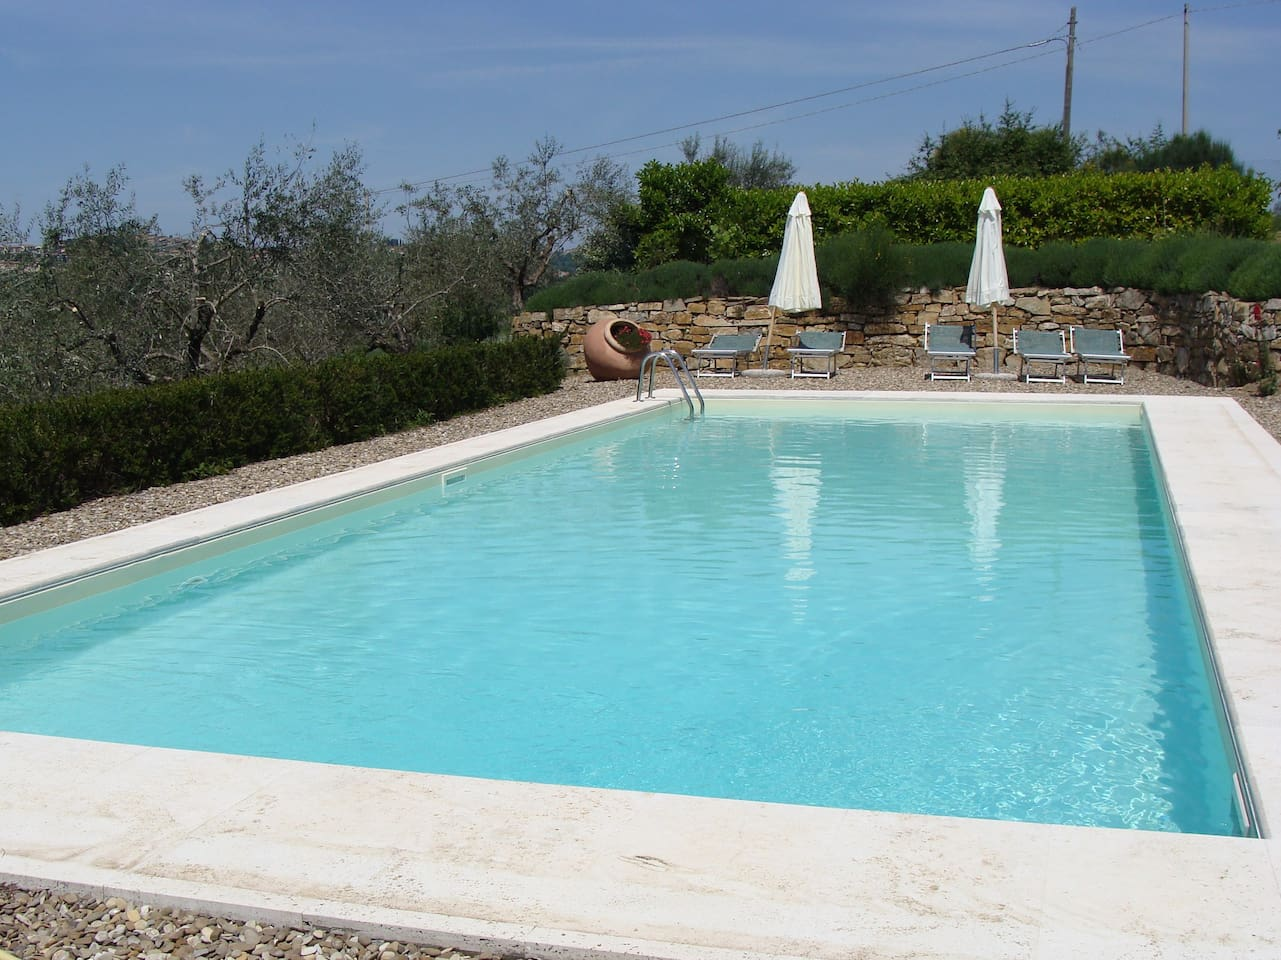 The swimming pool is shared with other guests